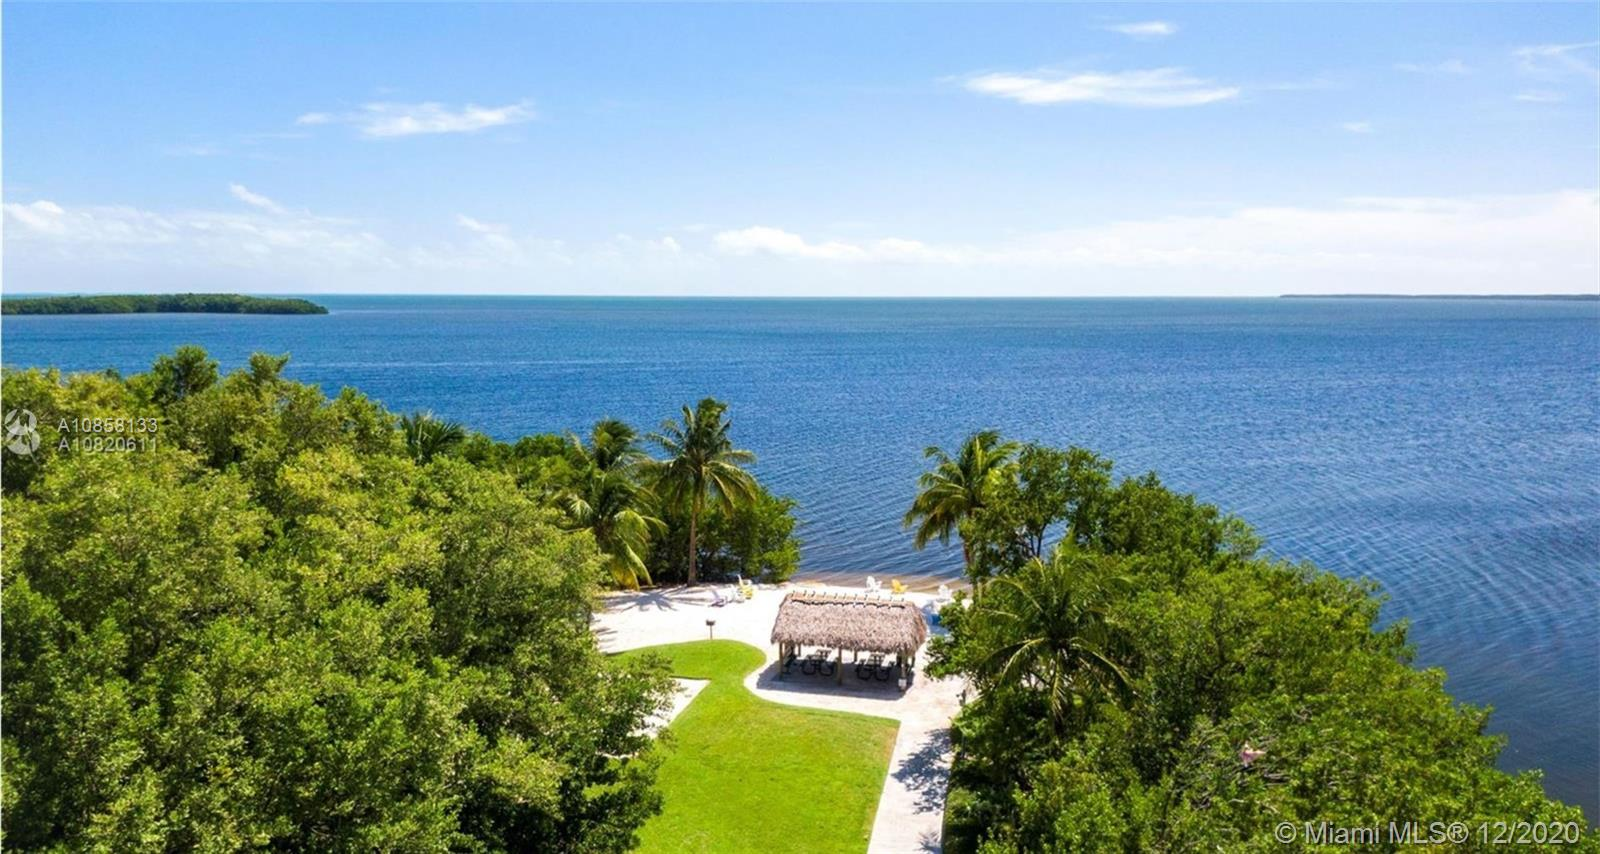 6020 Paradise Point Dr, Palmetto Bay, Florida 33157, 3 Bedrooms Bedrooms, ,5 BathroomsBathrooms,Residential,For Sale,6020 Paradise Point Dr,A10858133